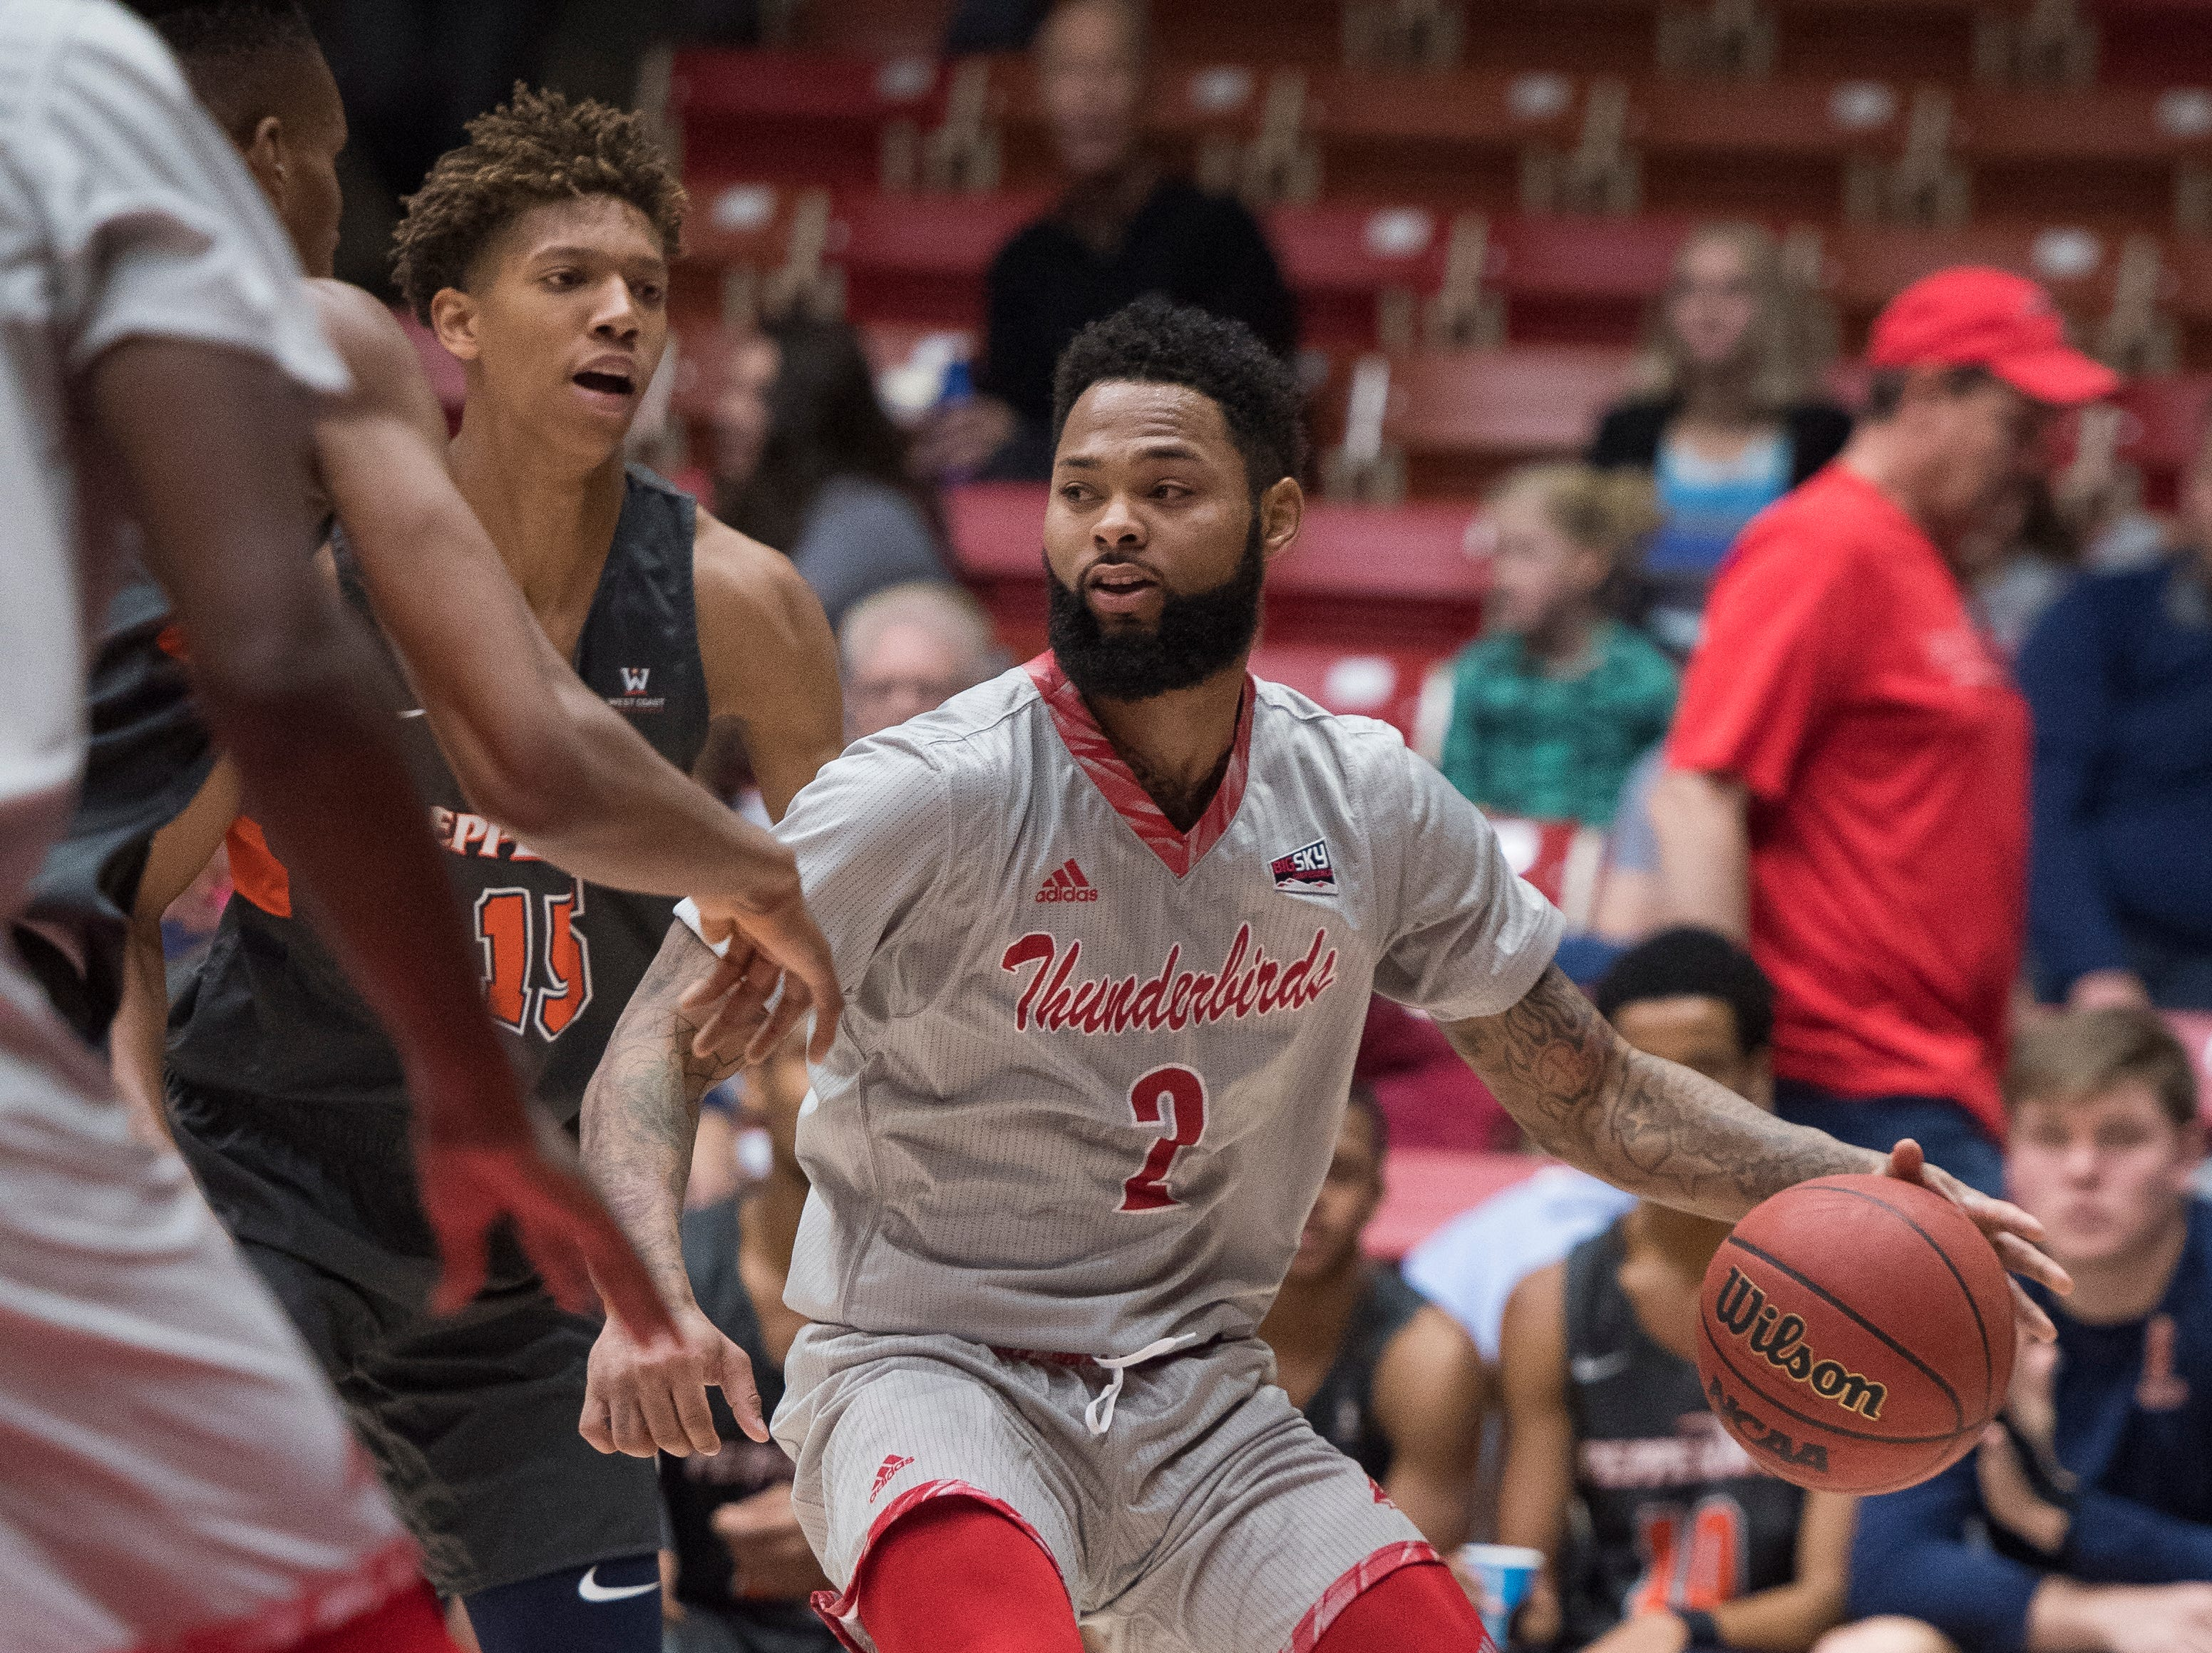 Southern Utah University senior Brandon Better (2) looks for an open pass against Pepperdine University in the America First Event Center Saturday, December 15, 2018. SUU won in overtime, 78-69.